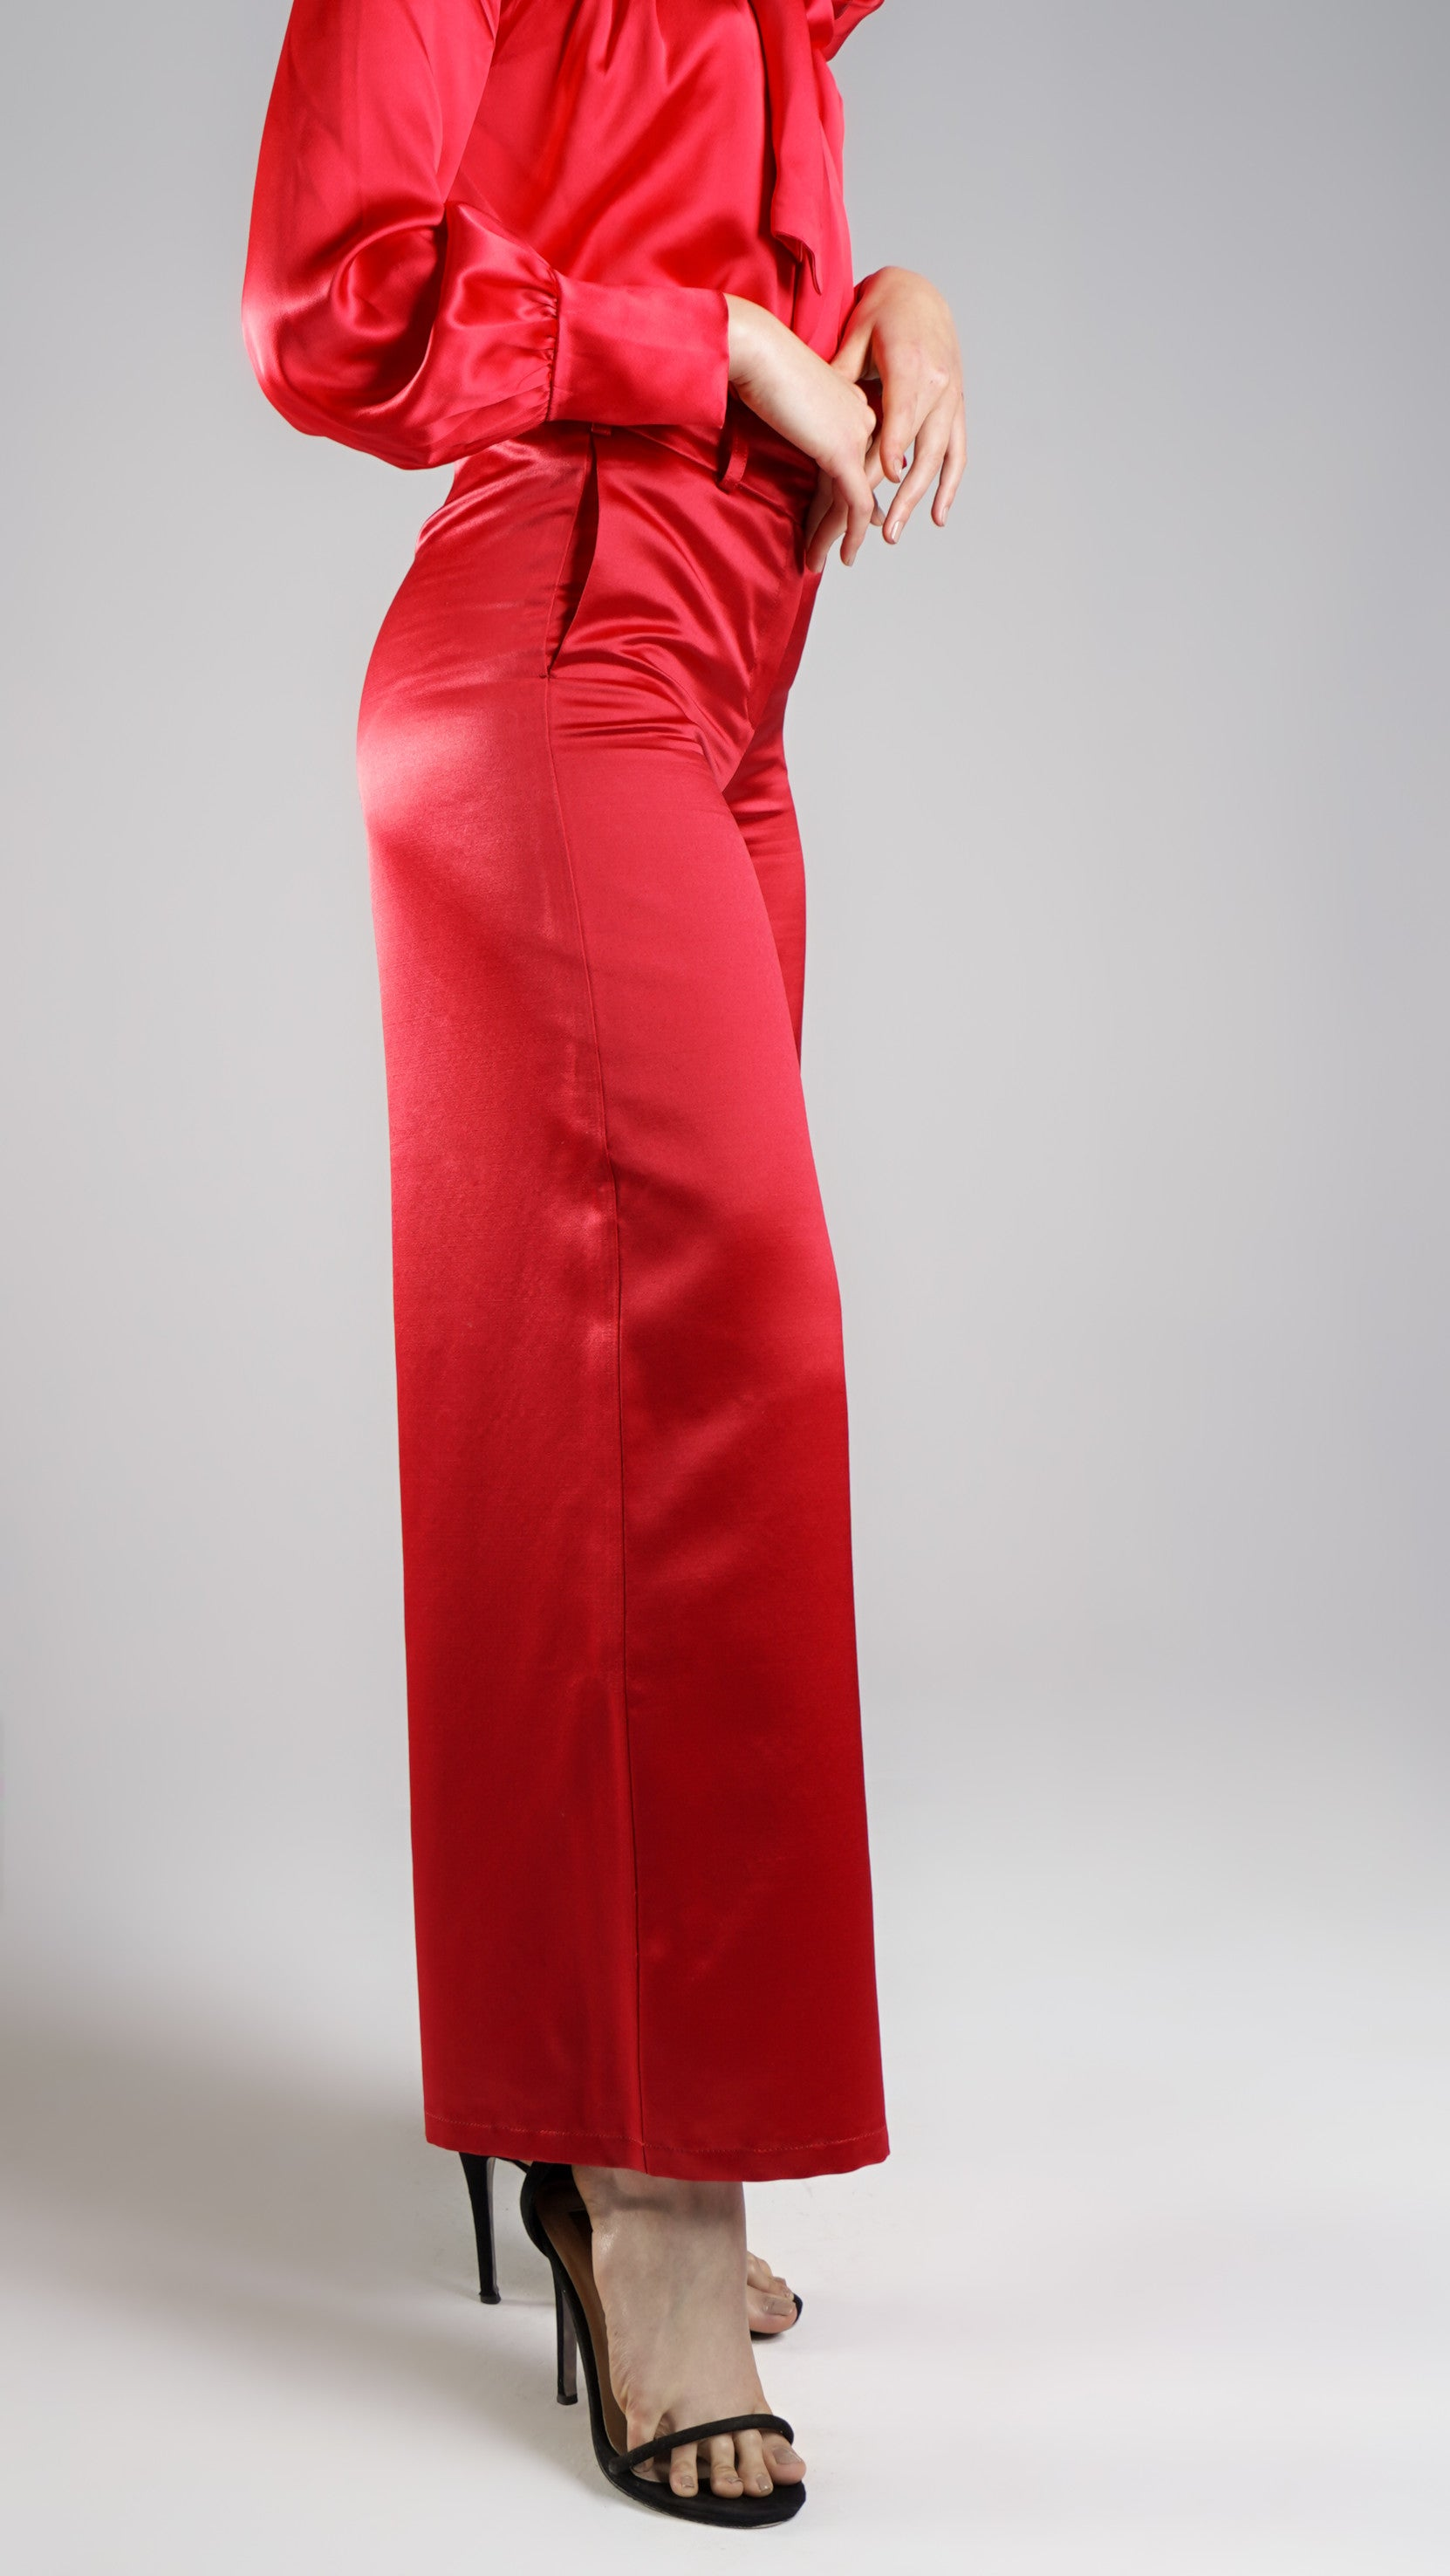 Party Wear Women Designer Red Pants in High End Pure Silk Ethically Made